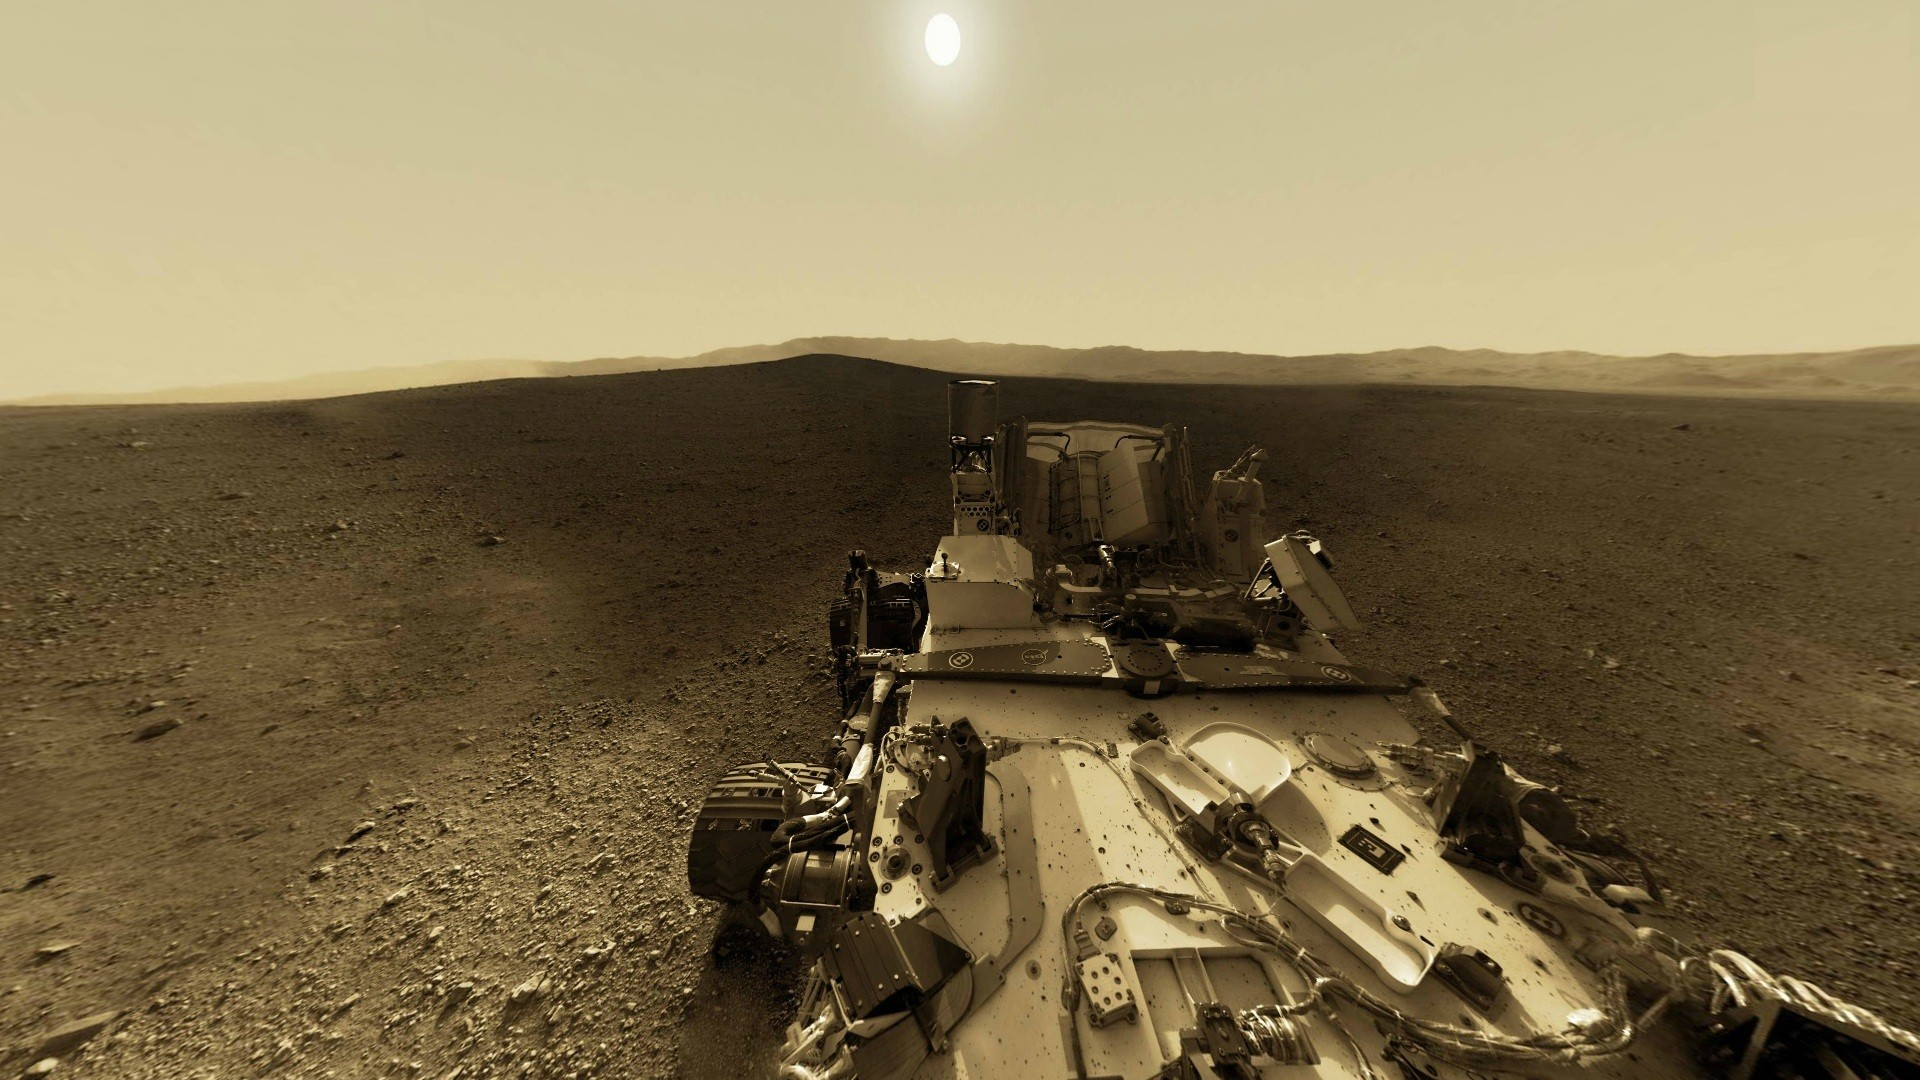 mars rover pictures hd - photo #16